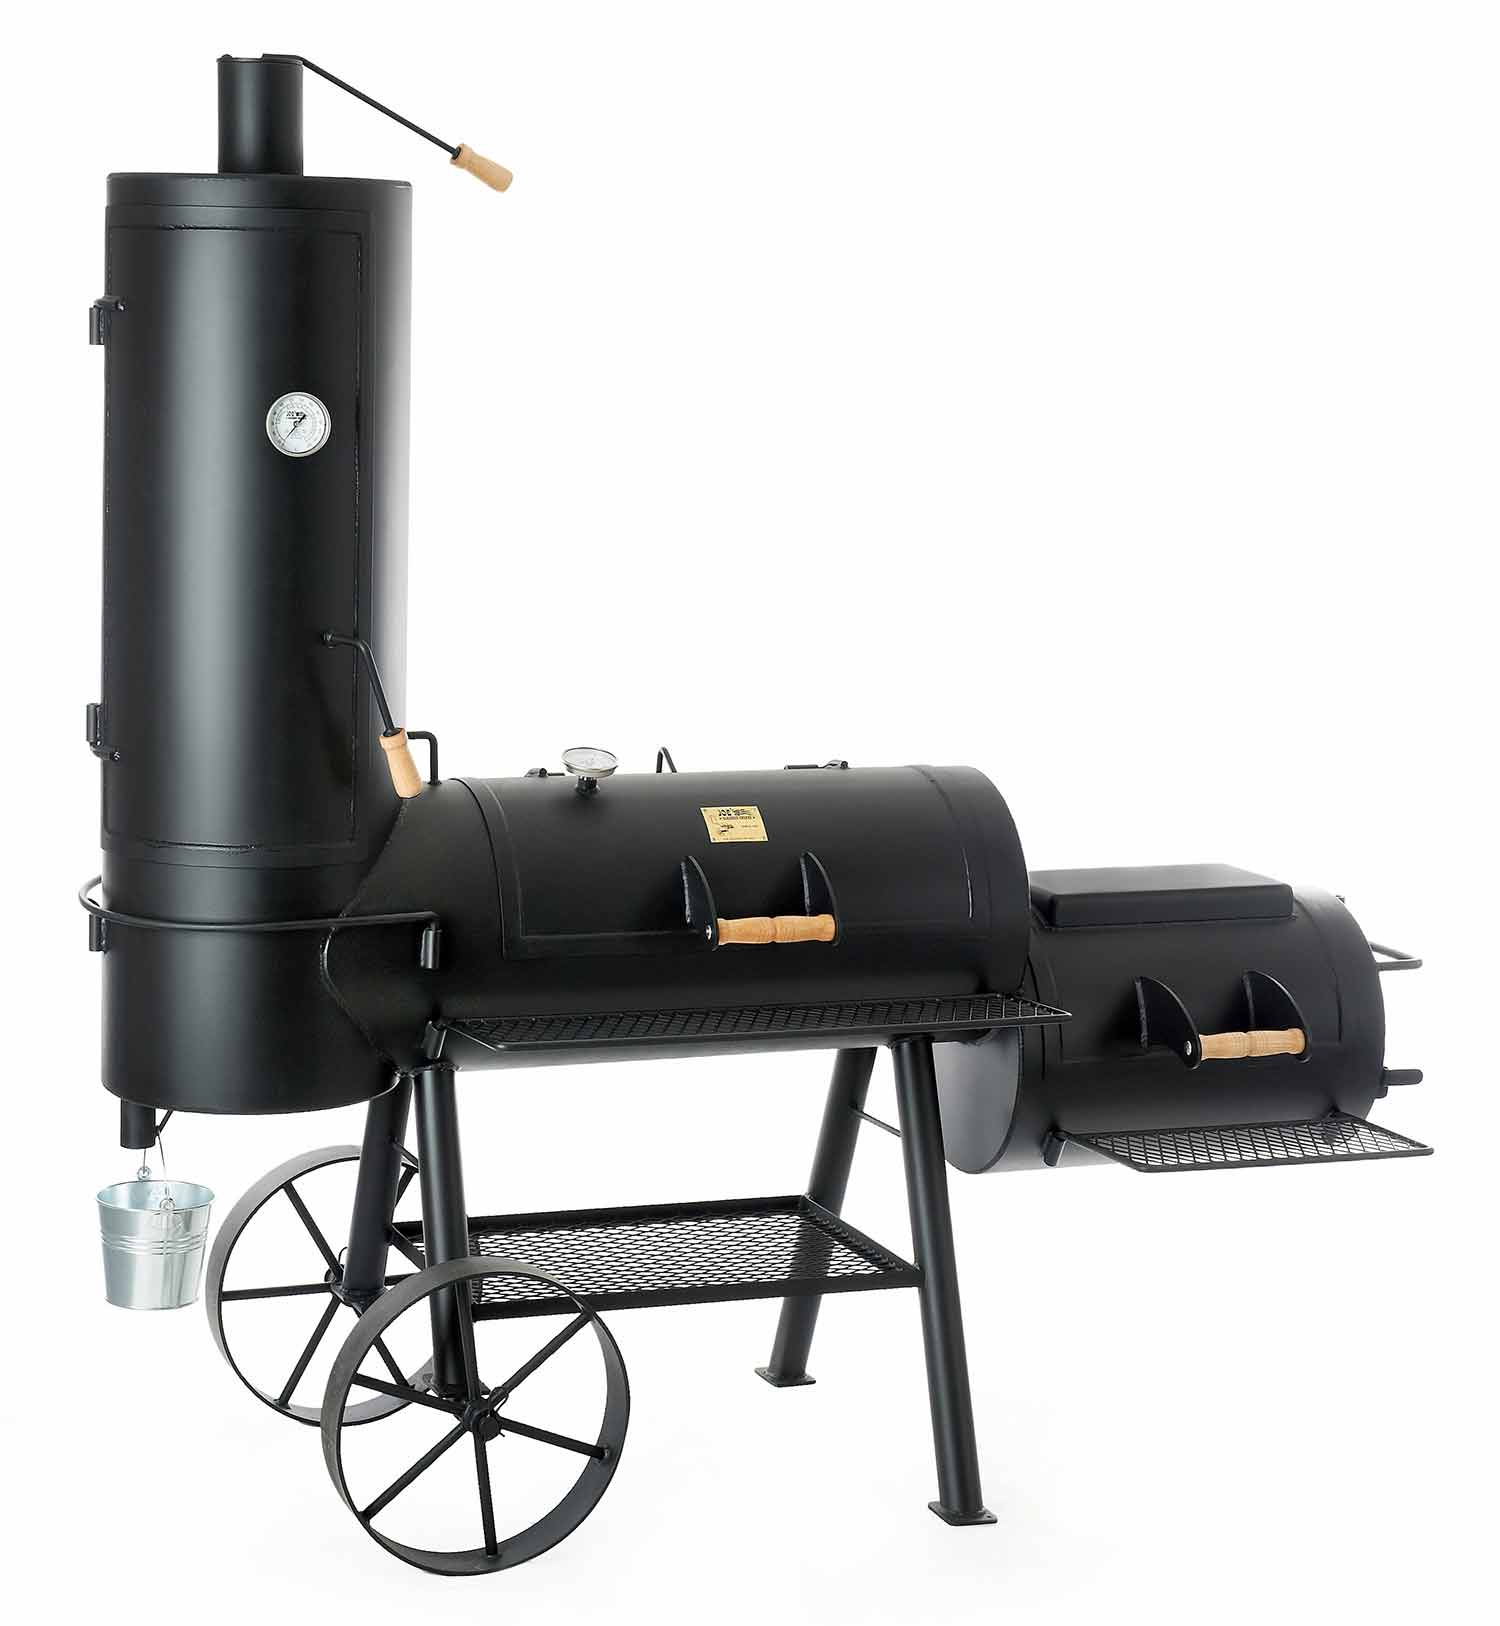 locomotive chuckwagon barbecue fumoir